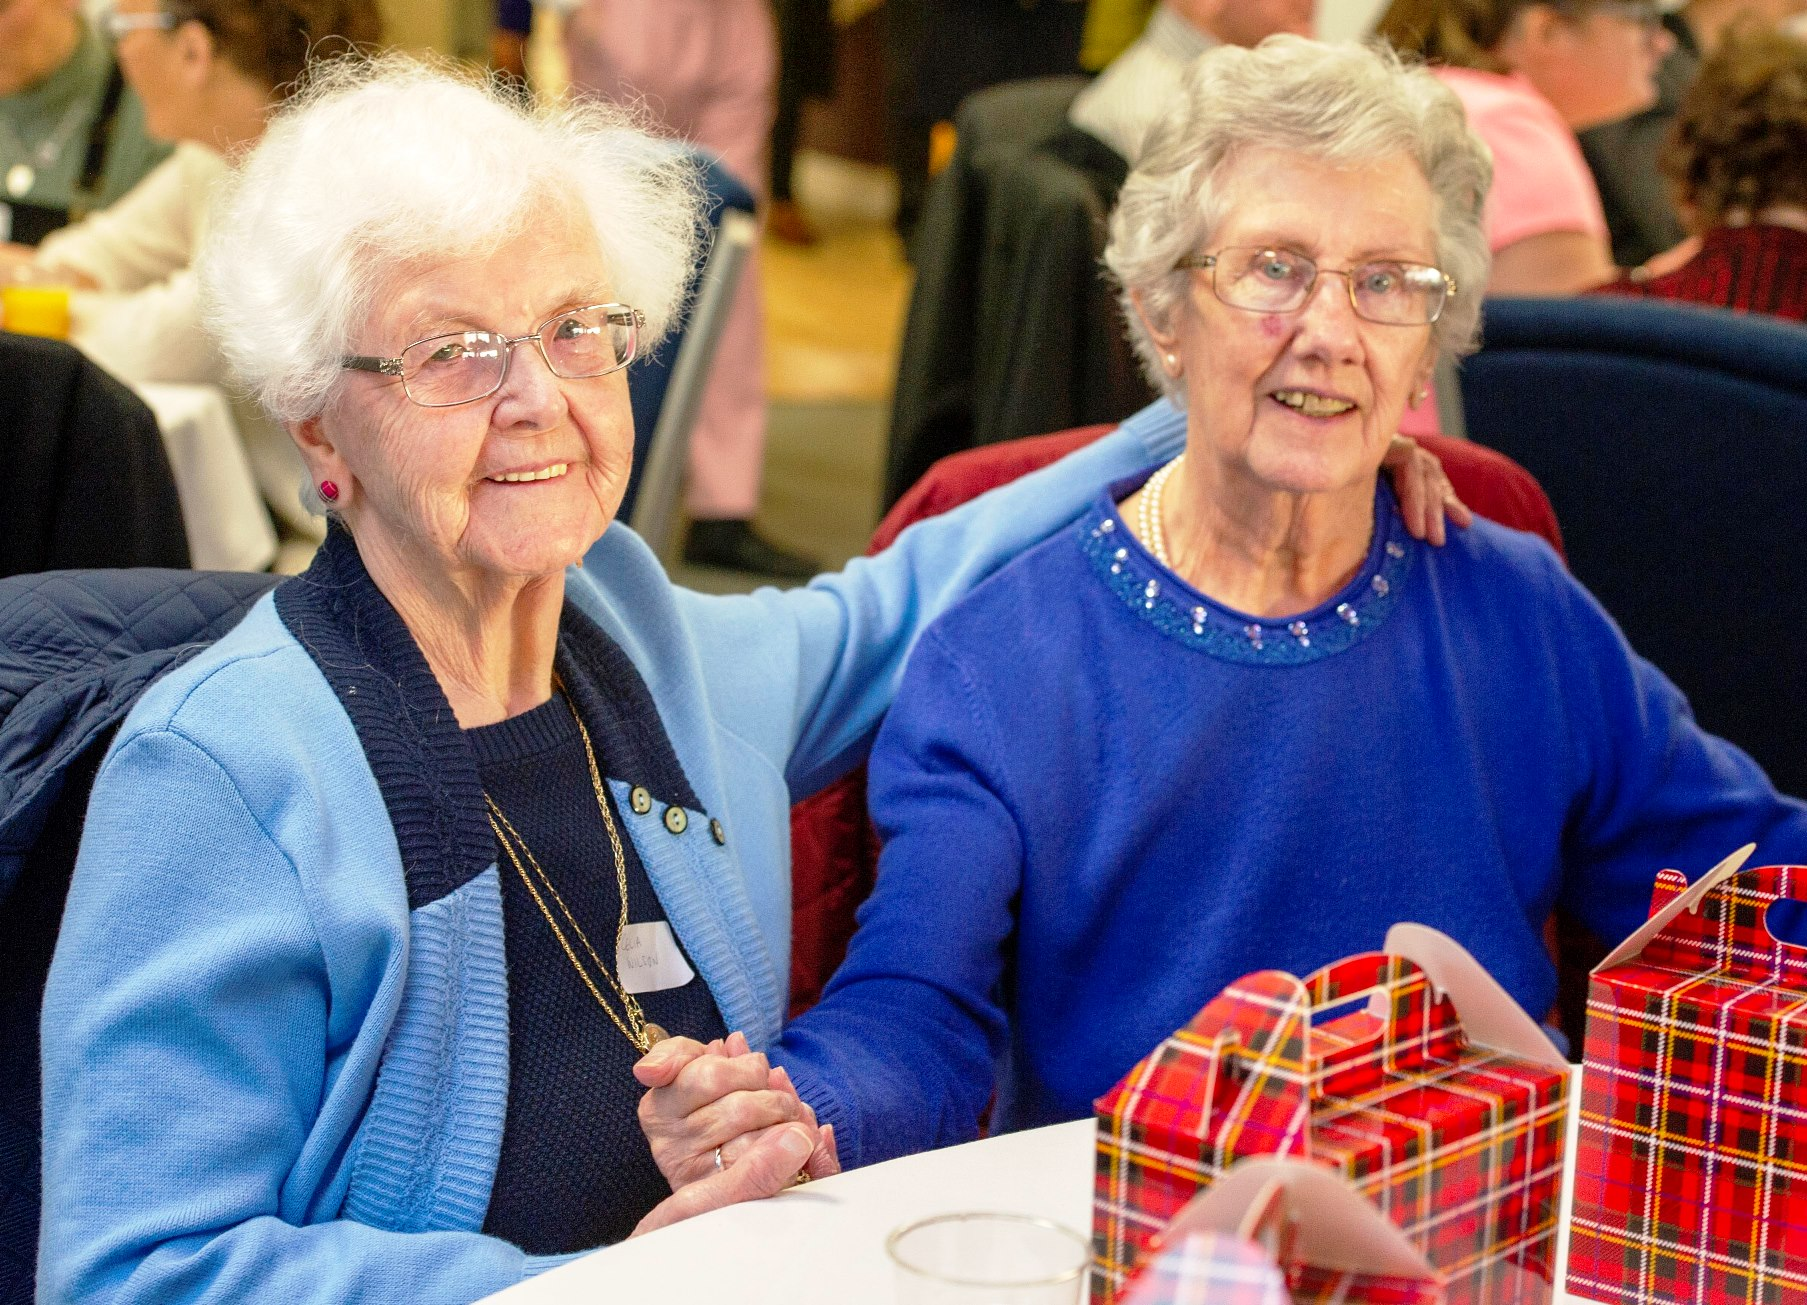 Loretto Housing held its AGM recently